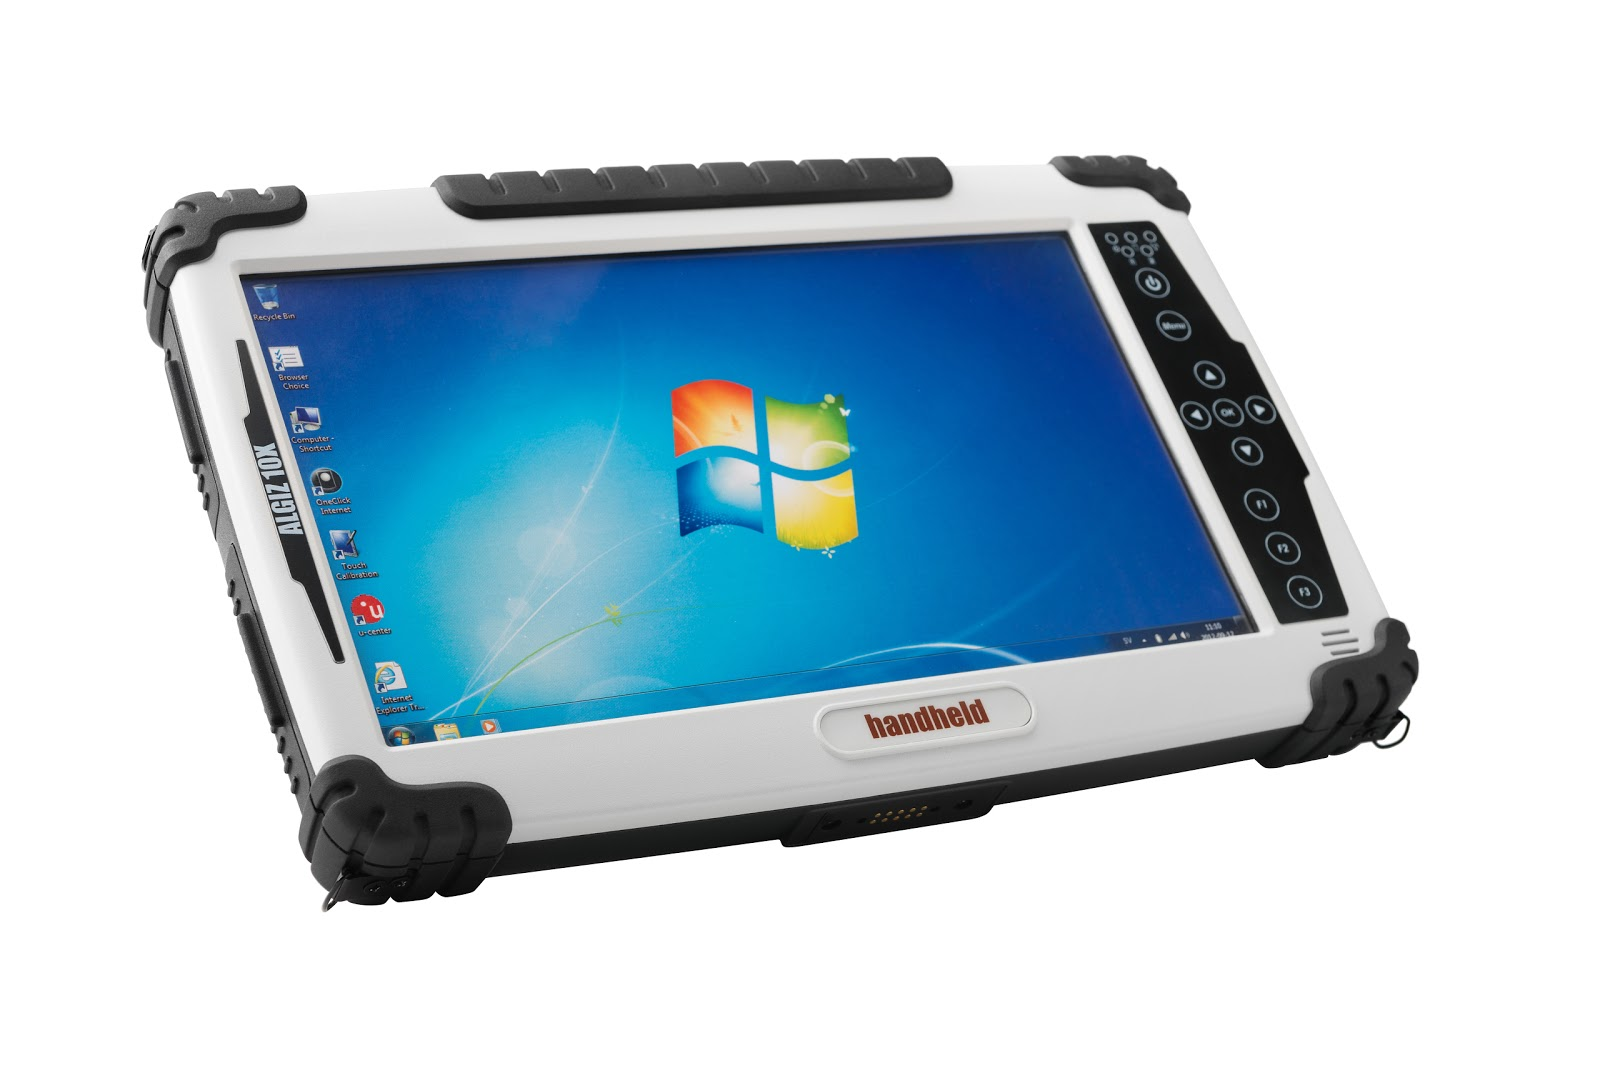 Tablet Pc Pacific Data Systems Handheld Algiz 10x Rugged Tablet Pc